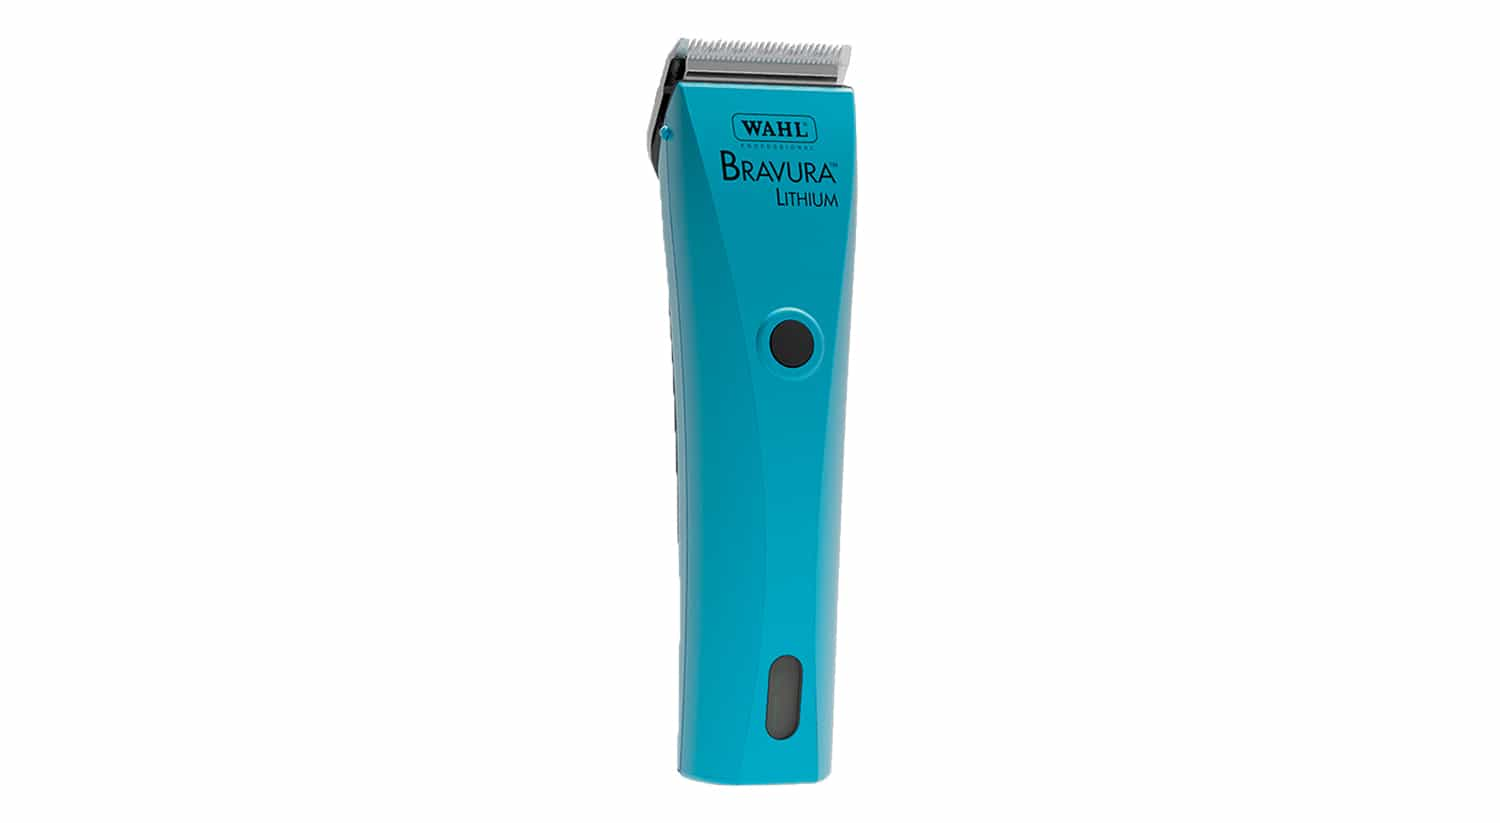 Wahl Bravura - Best Dog Clippers for 2020